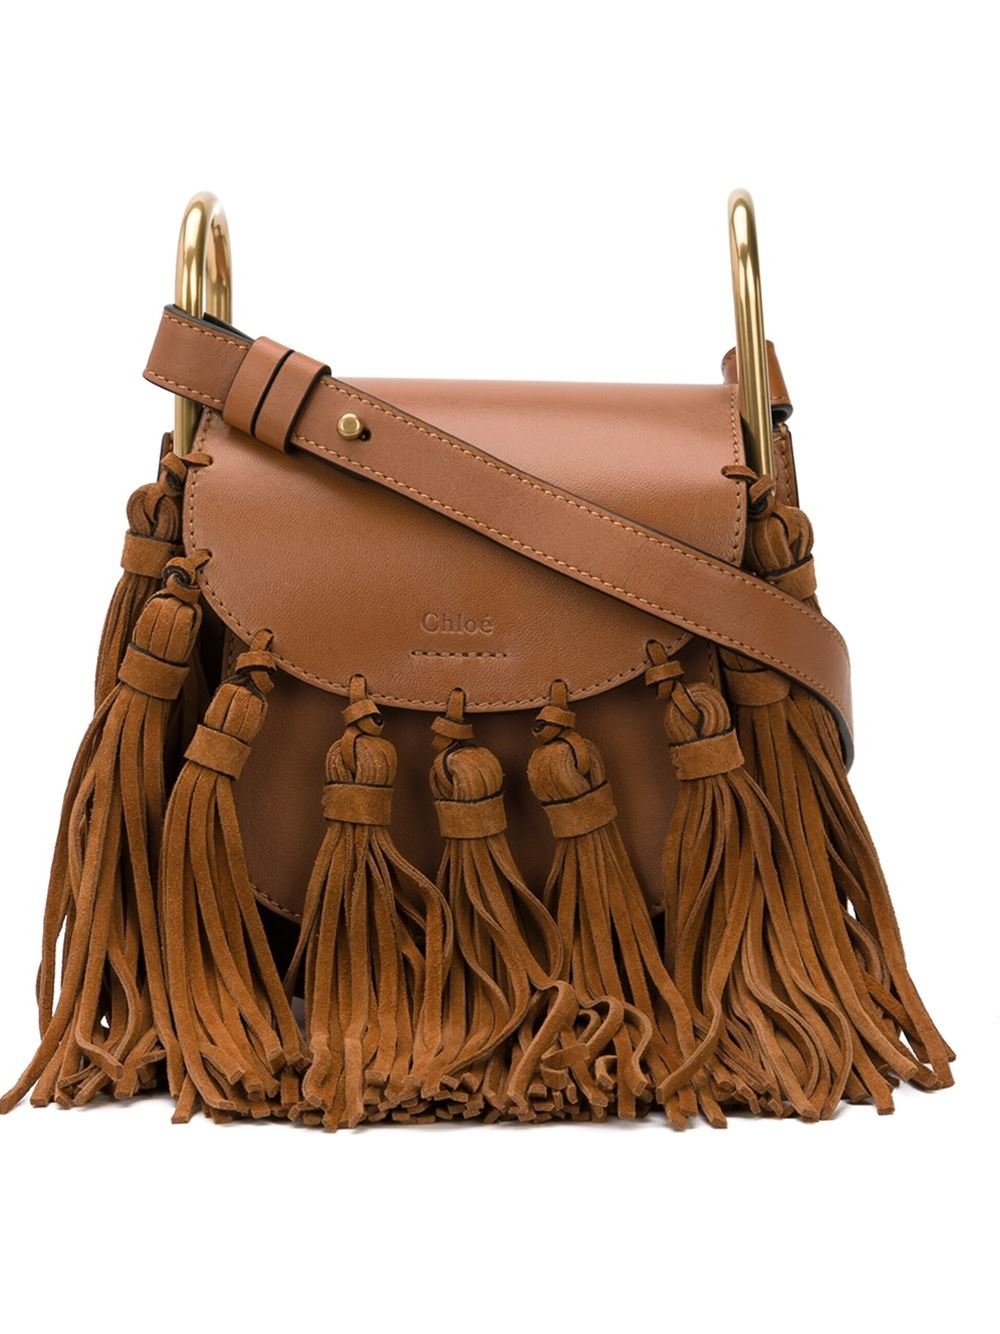 replica handbags chloe - Chlo�� \u0026#39;hudson\u0026#39; Crossbody Bag in Brown | Lyst